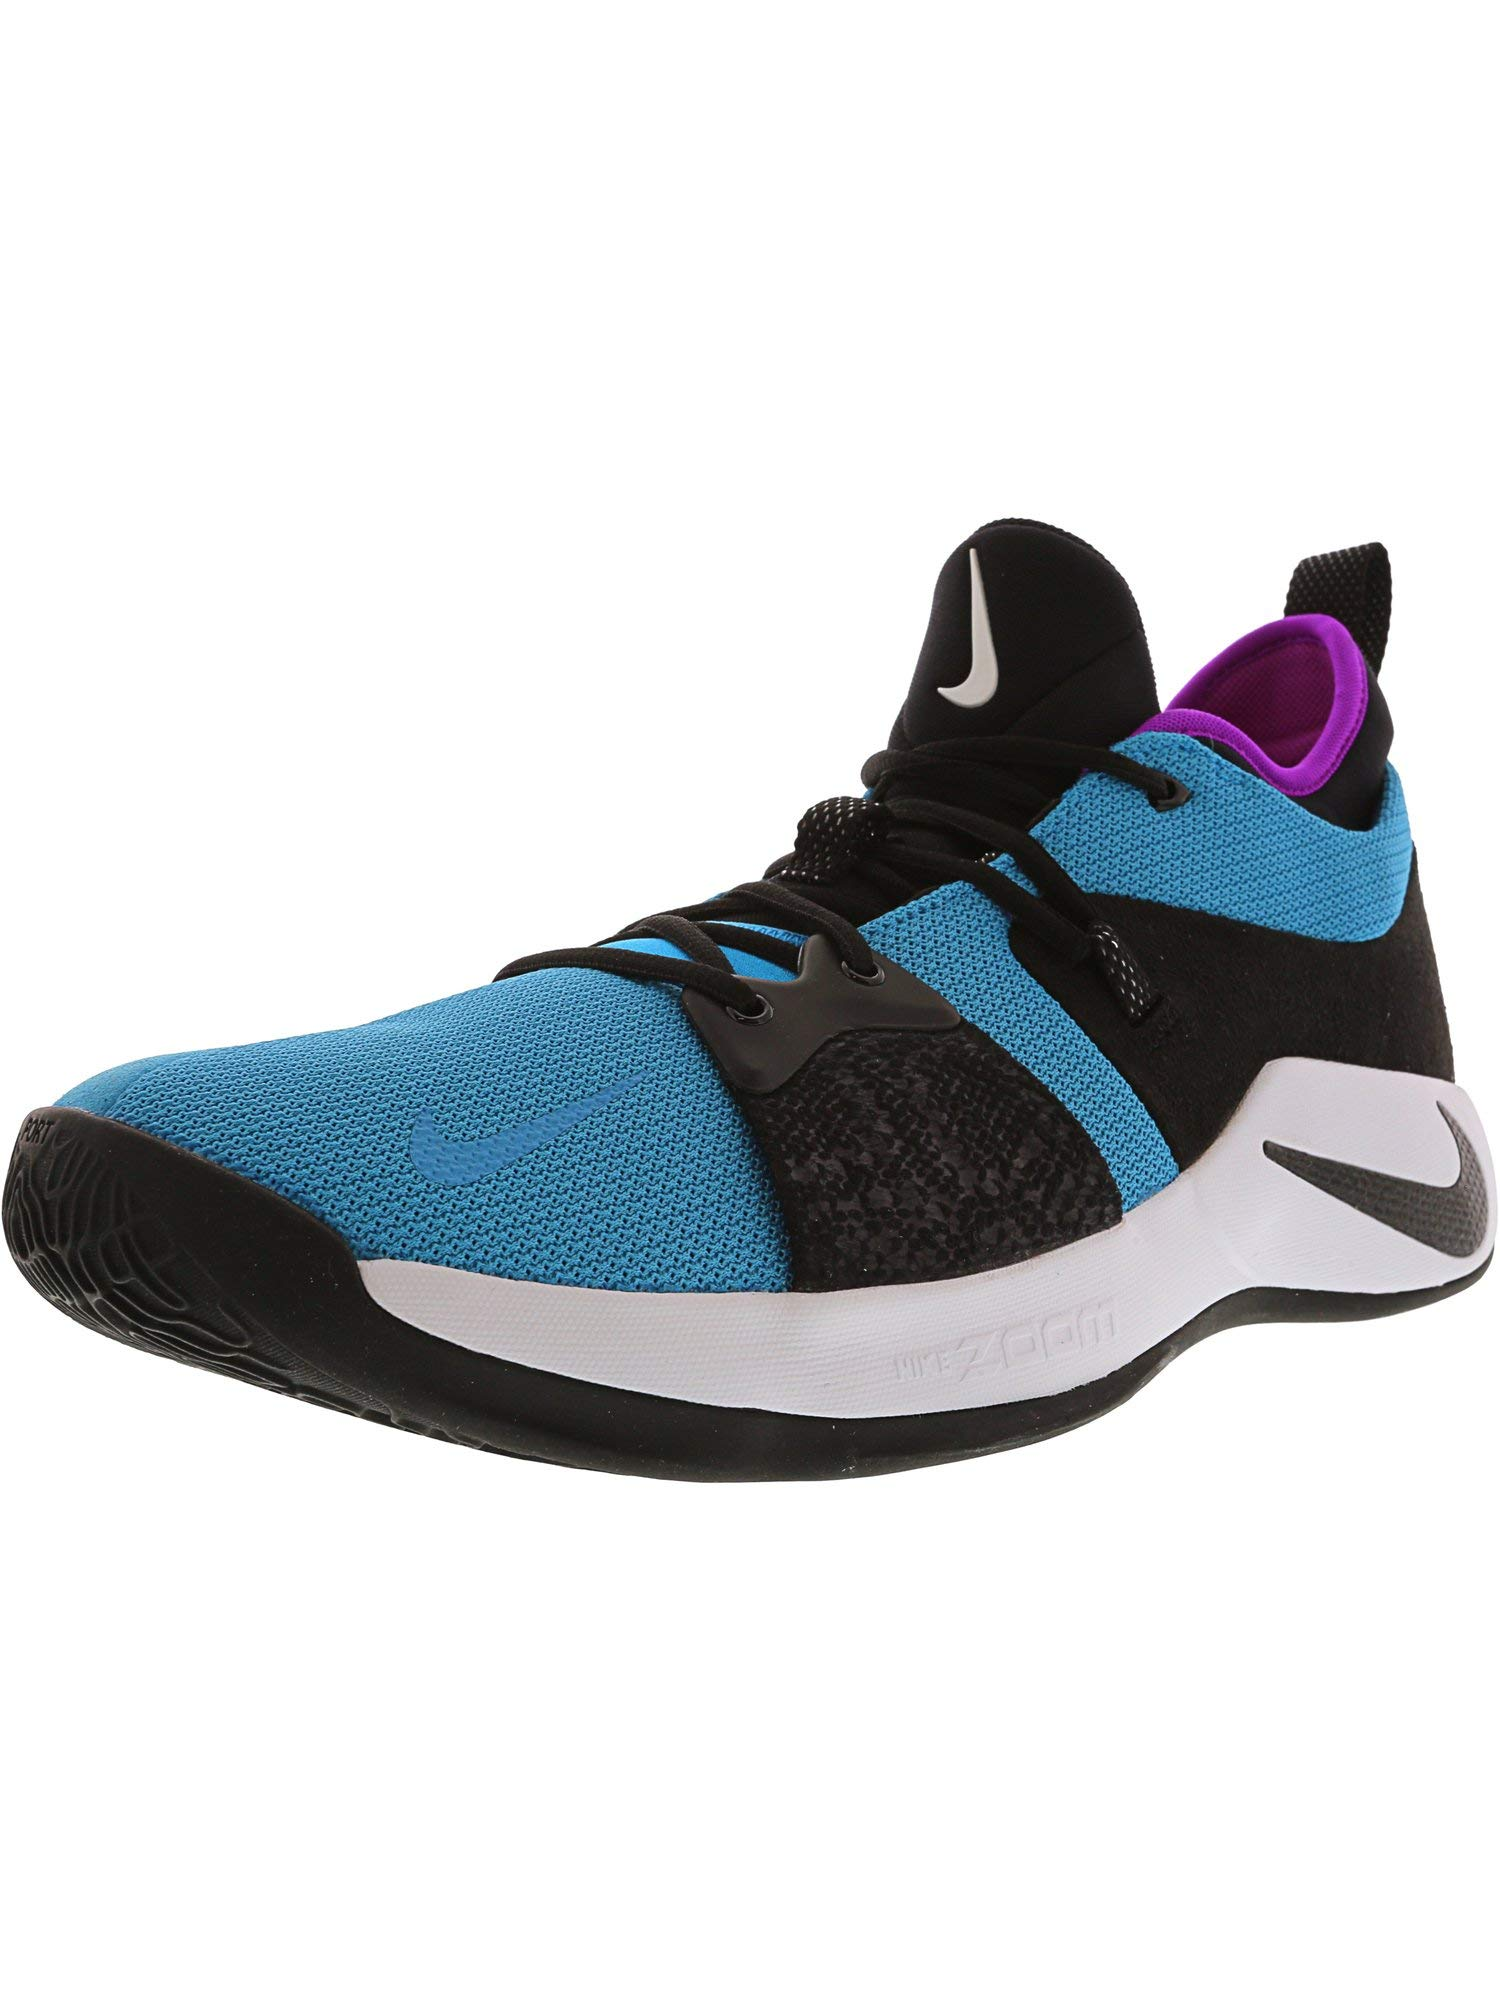 c9f0b62a35d20d Nike Men s Pg 2 Blue Lagoon Black - Hyper Violet Ankle-High Running Shoe 14M